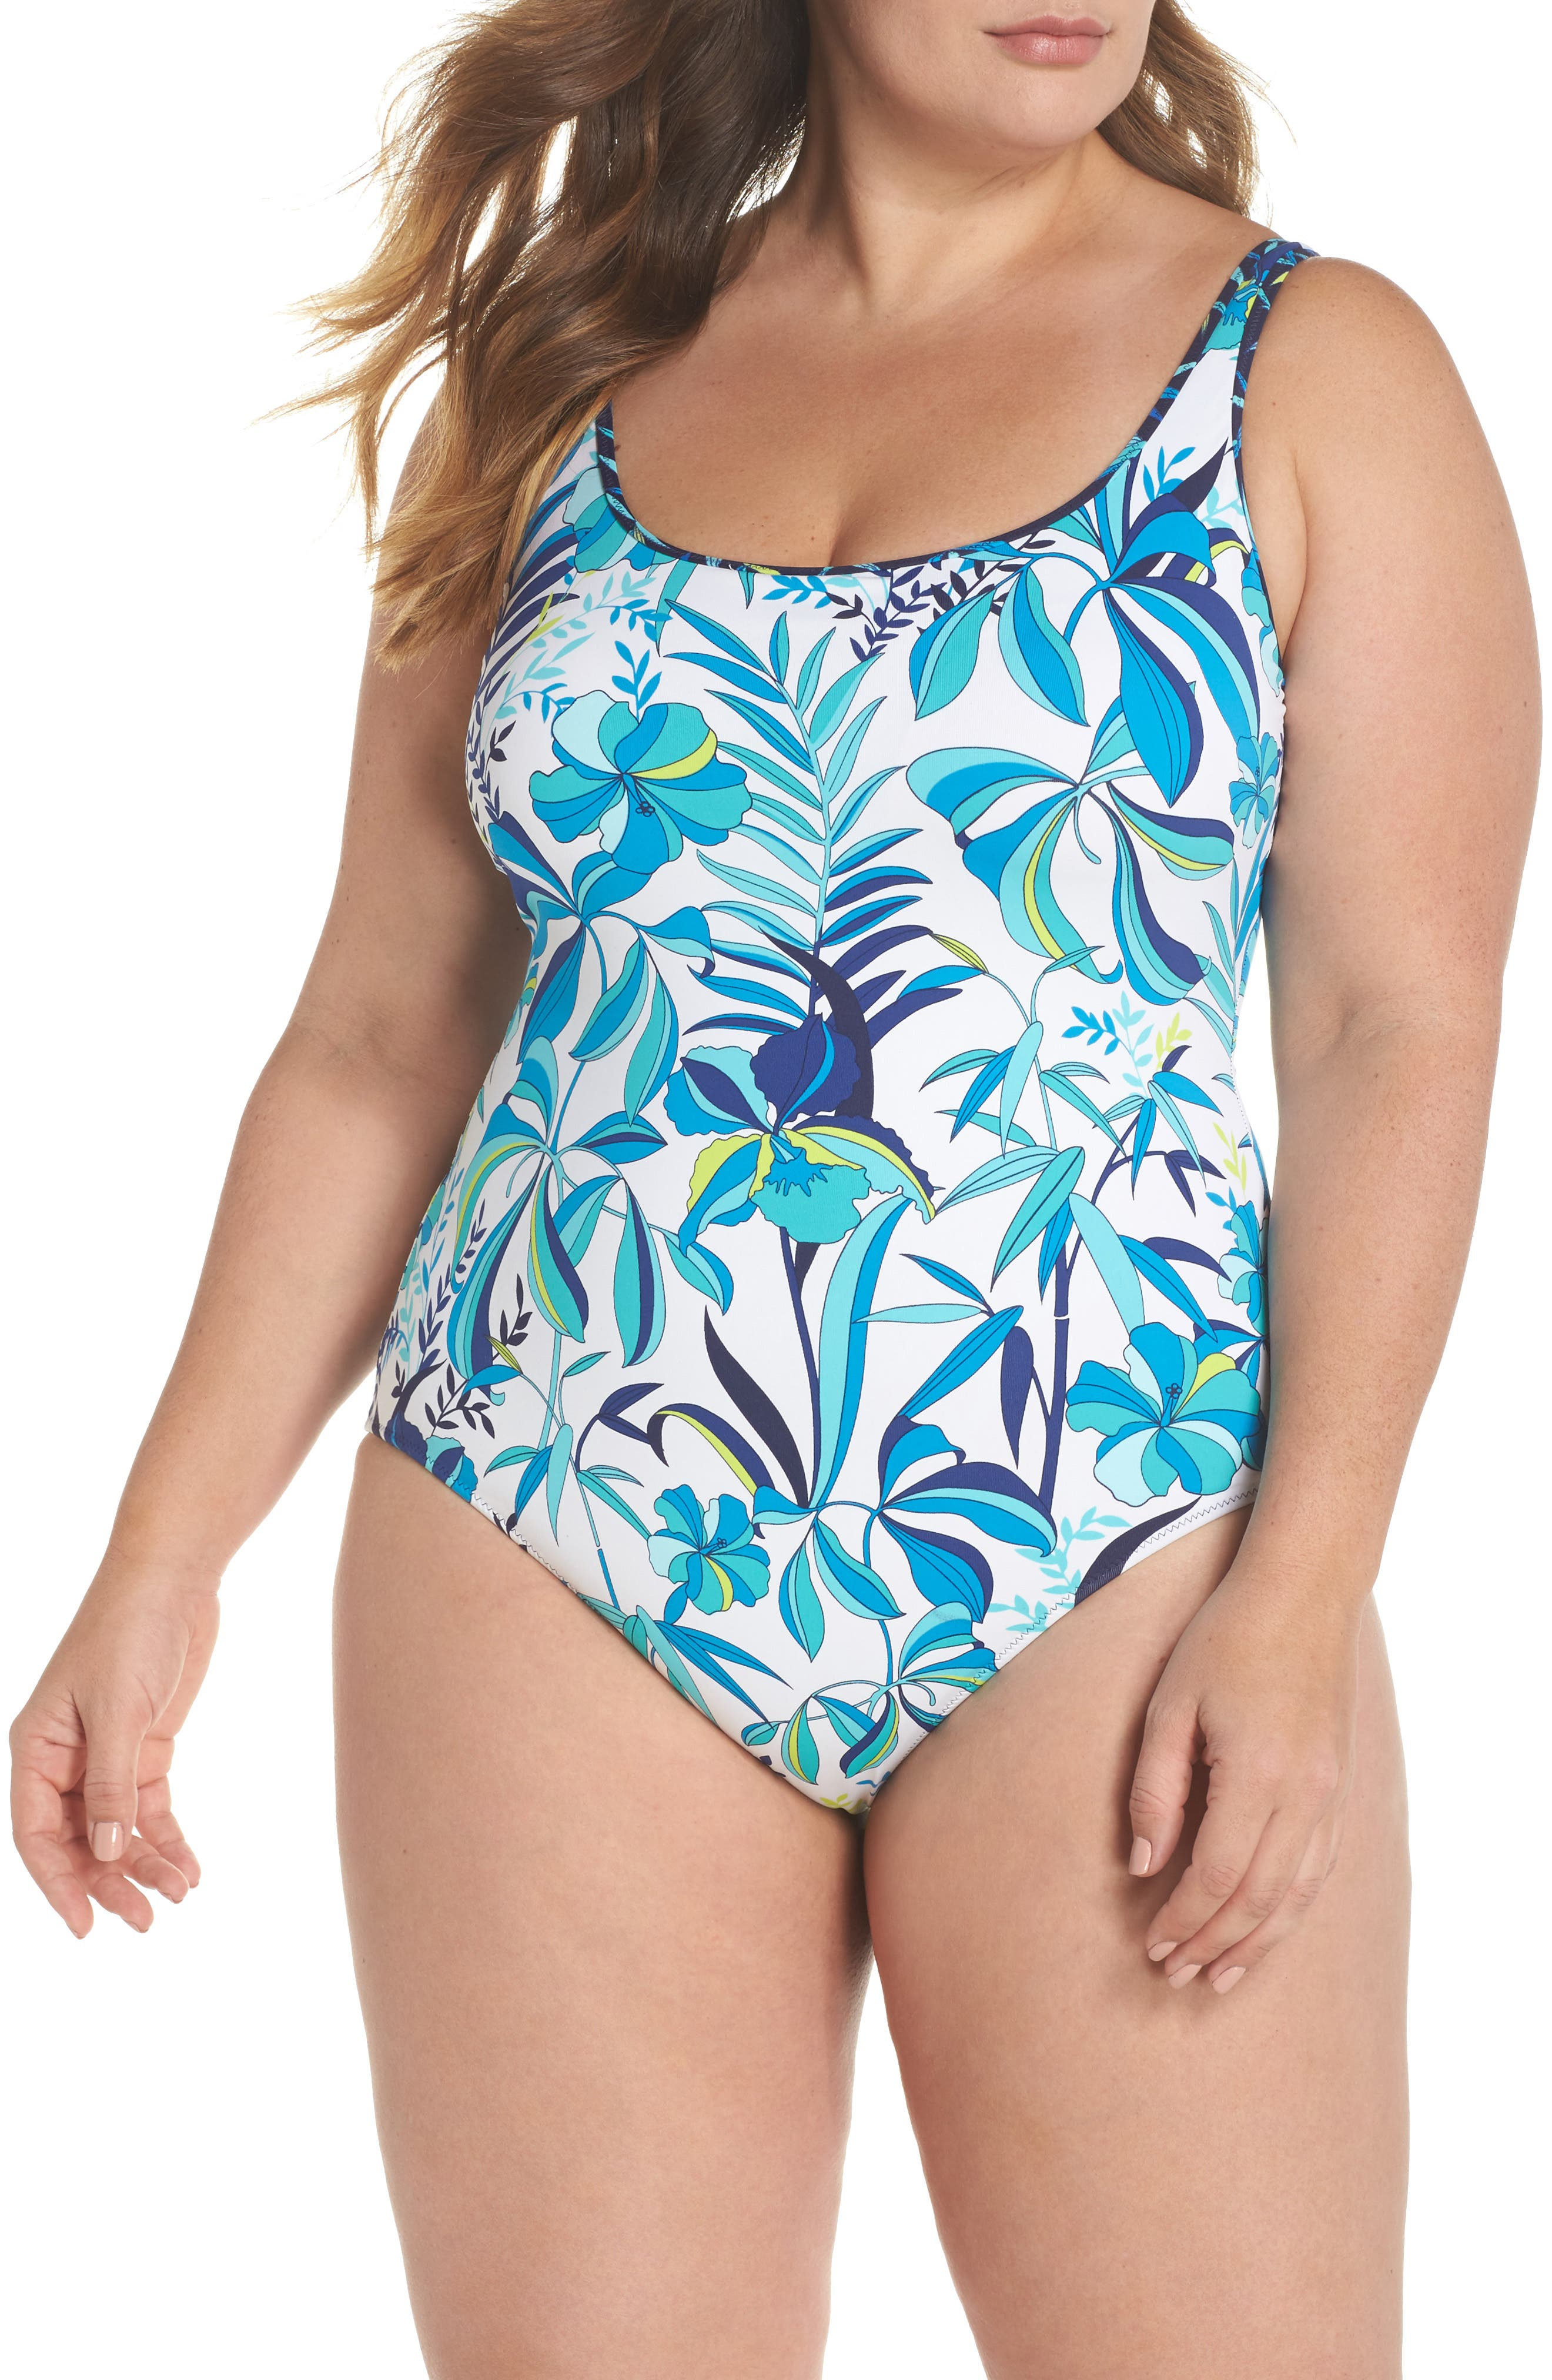 Tropical Swirl Reversible One-Piece Swimsuit,                             Main thumbnail 1, color,                             100